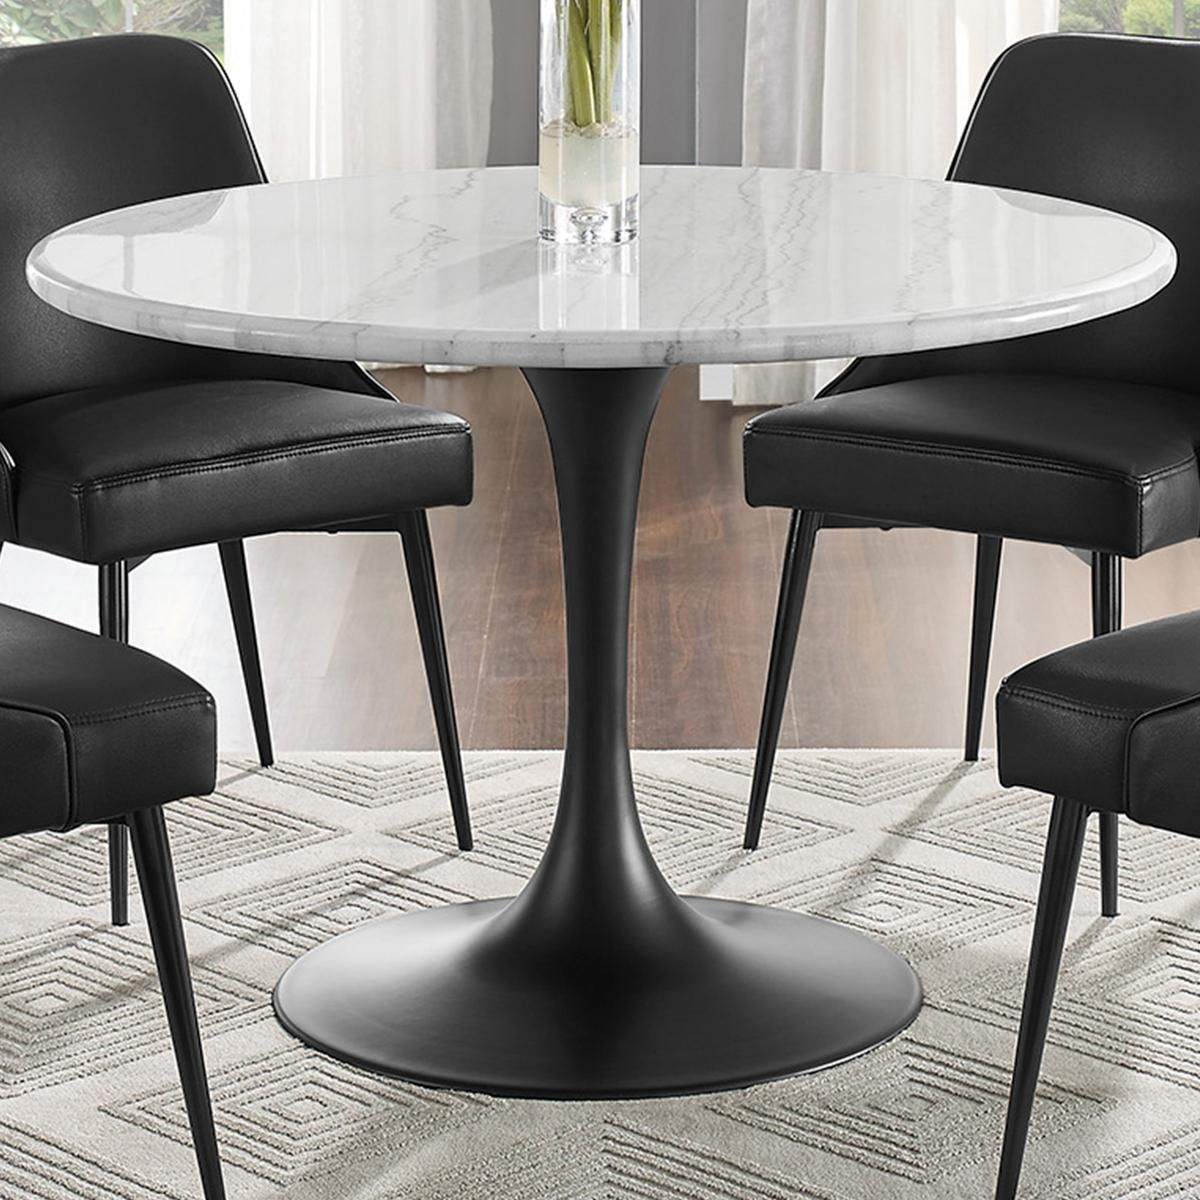 Crystal City Colfax Round Dining Table In Black And White Inside Most Recently Released Chapman Marble Oval Dining Tables (View 7 of 25)